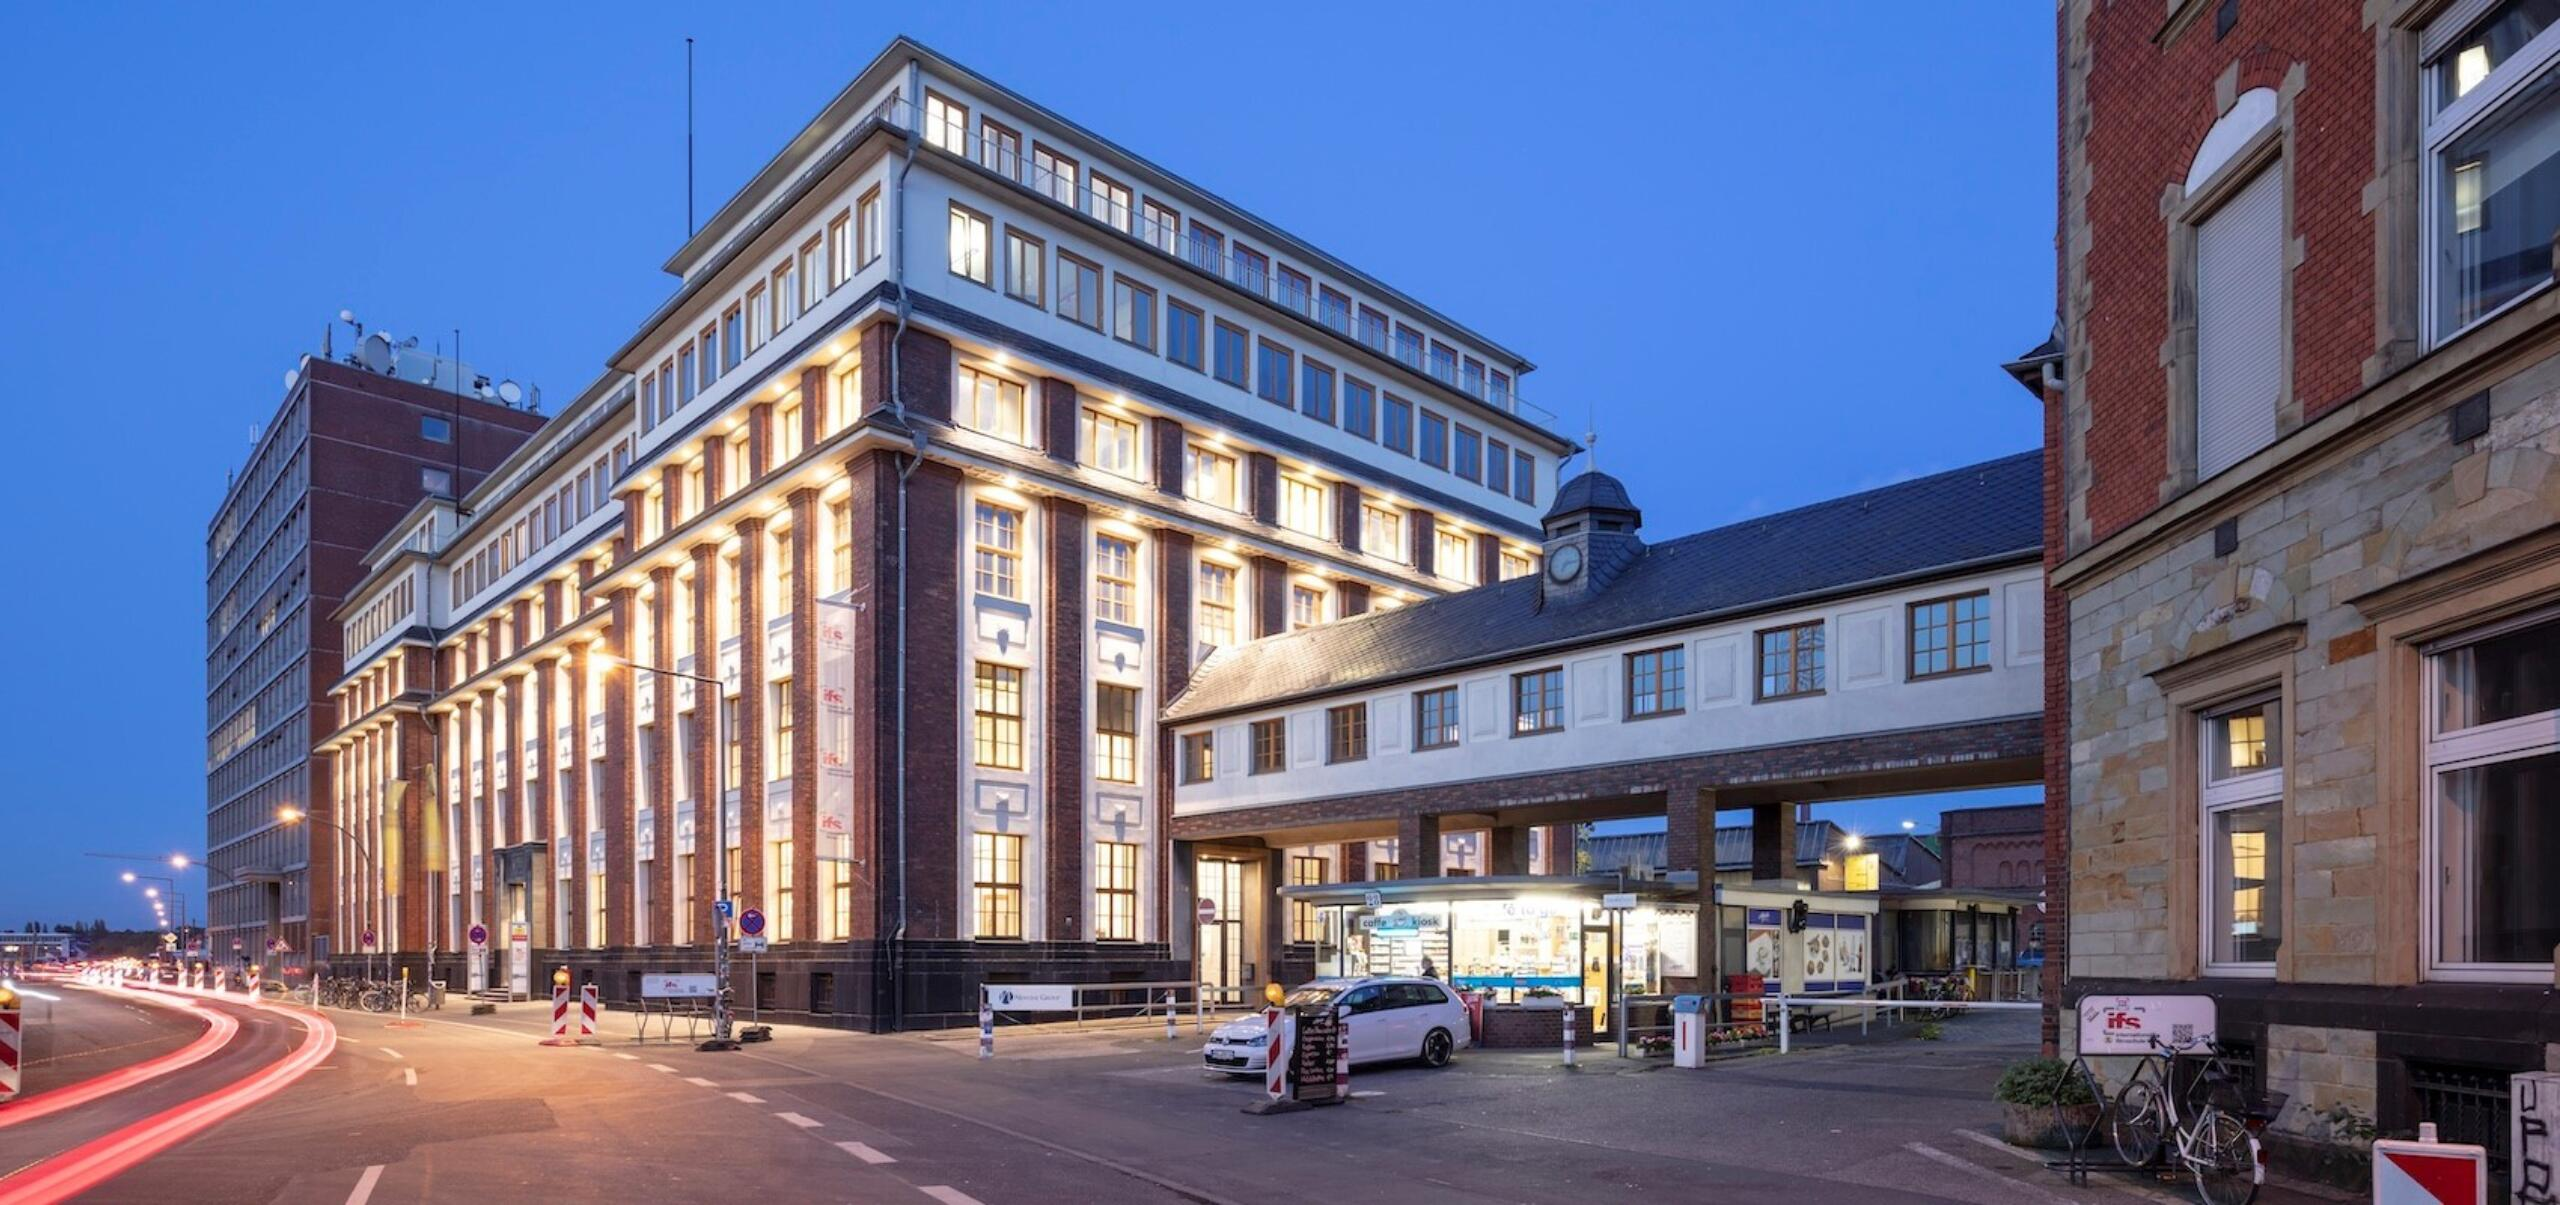 Facades of buildings at Schanzenstrasse 22, 24, and 28 during evening